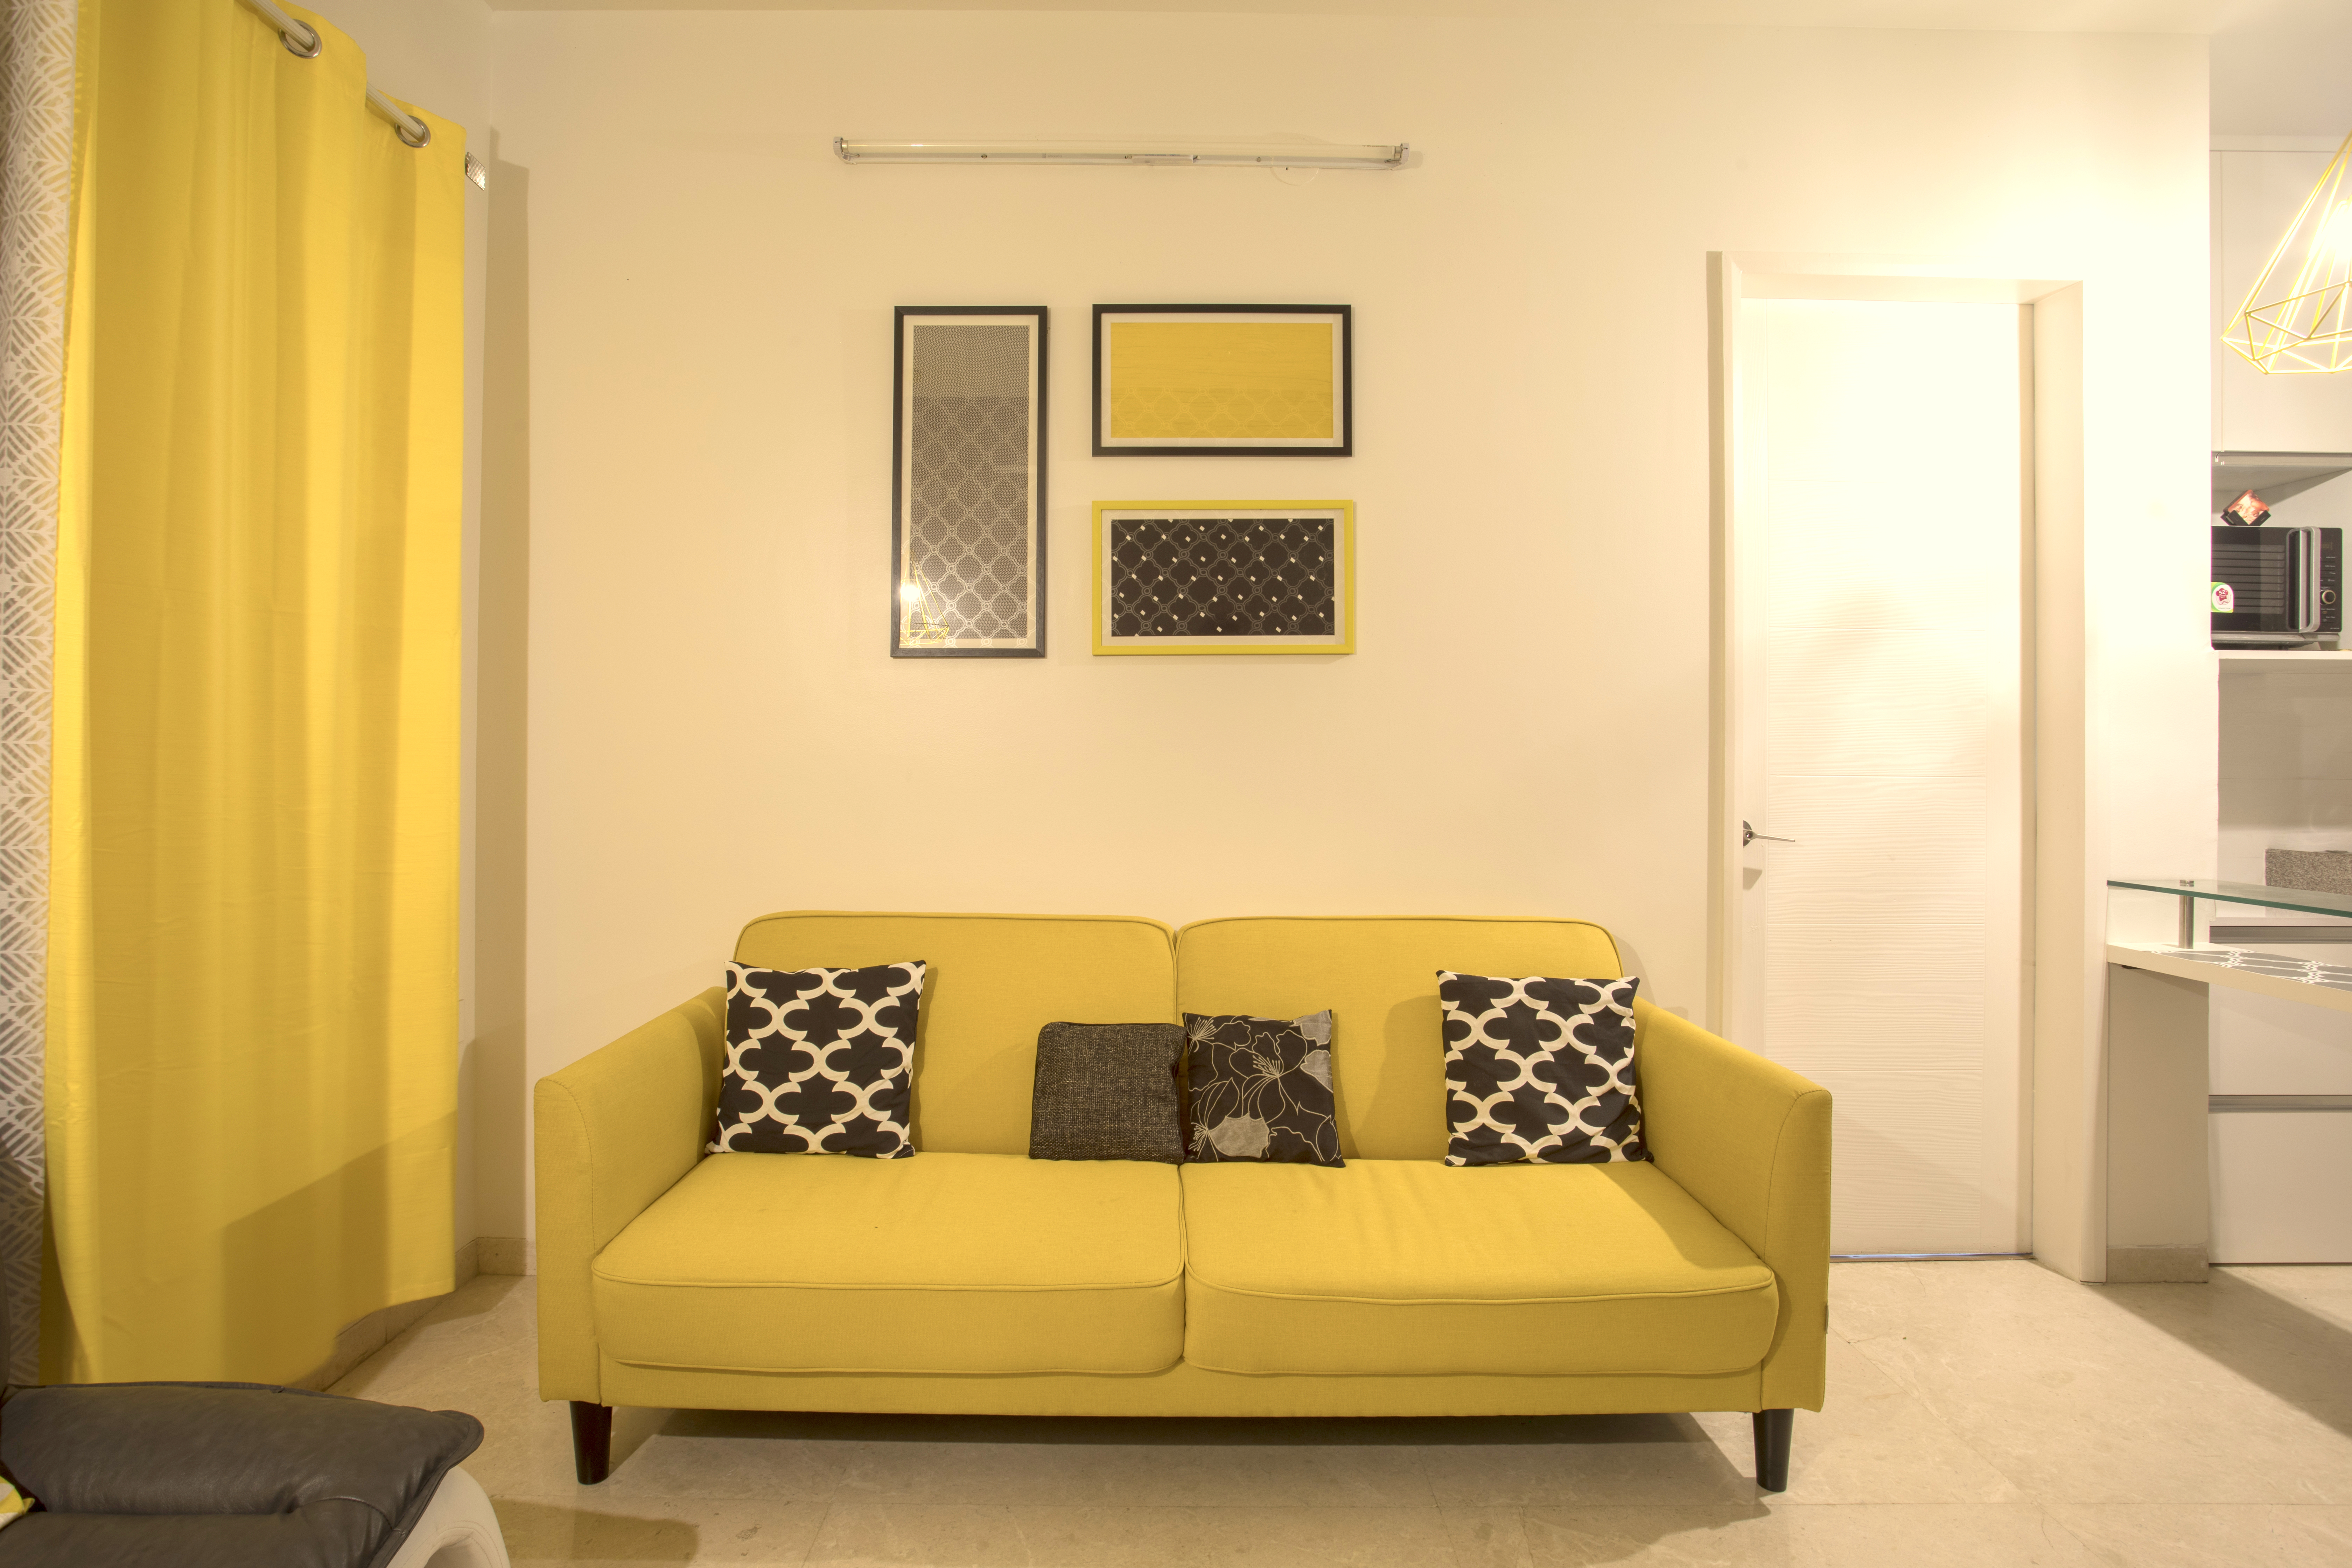 ... Integrate The Yellow Sofa Into The Living Room Without Making It Seem  Out Of Place. The Accent Pillows Are Quirky And Fun And They Combine Well  With The ...